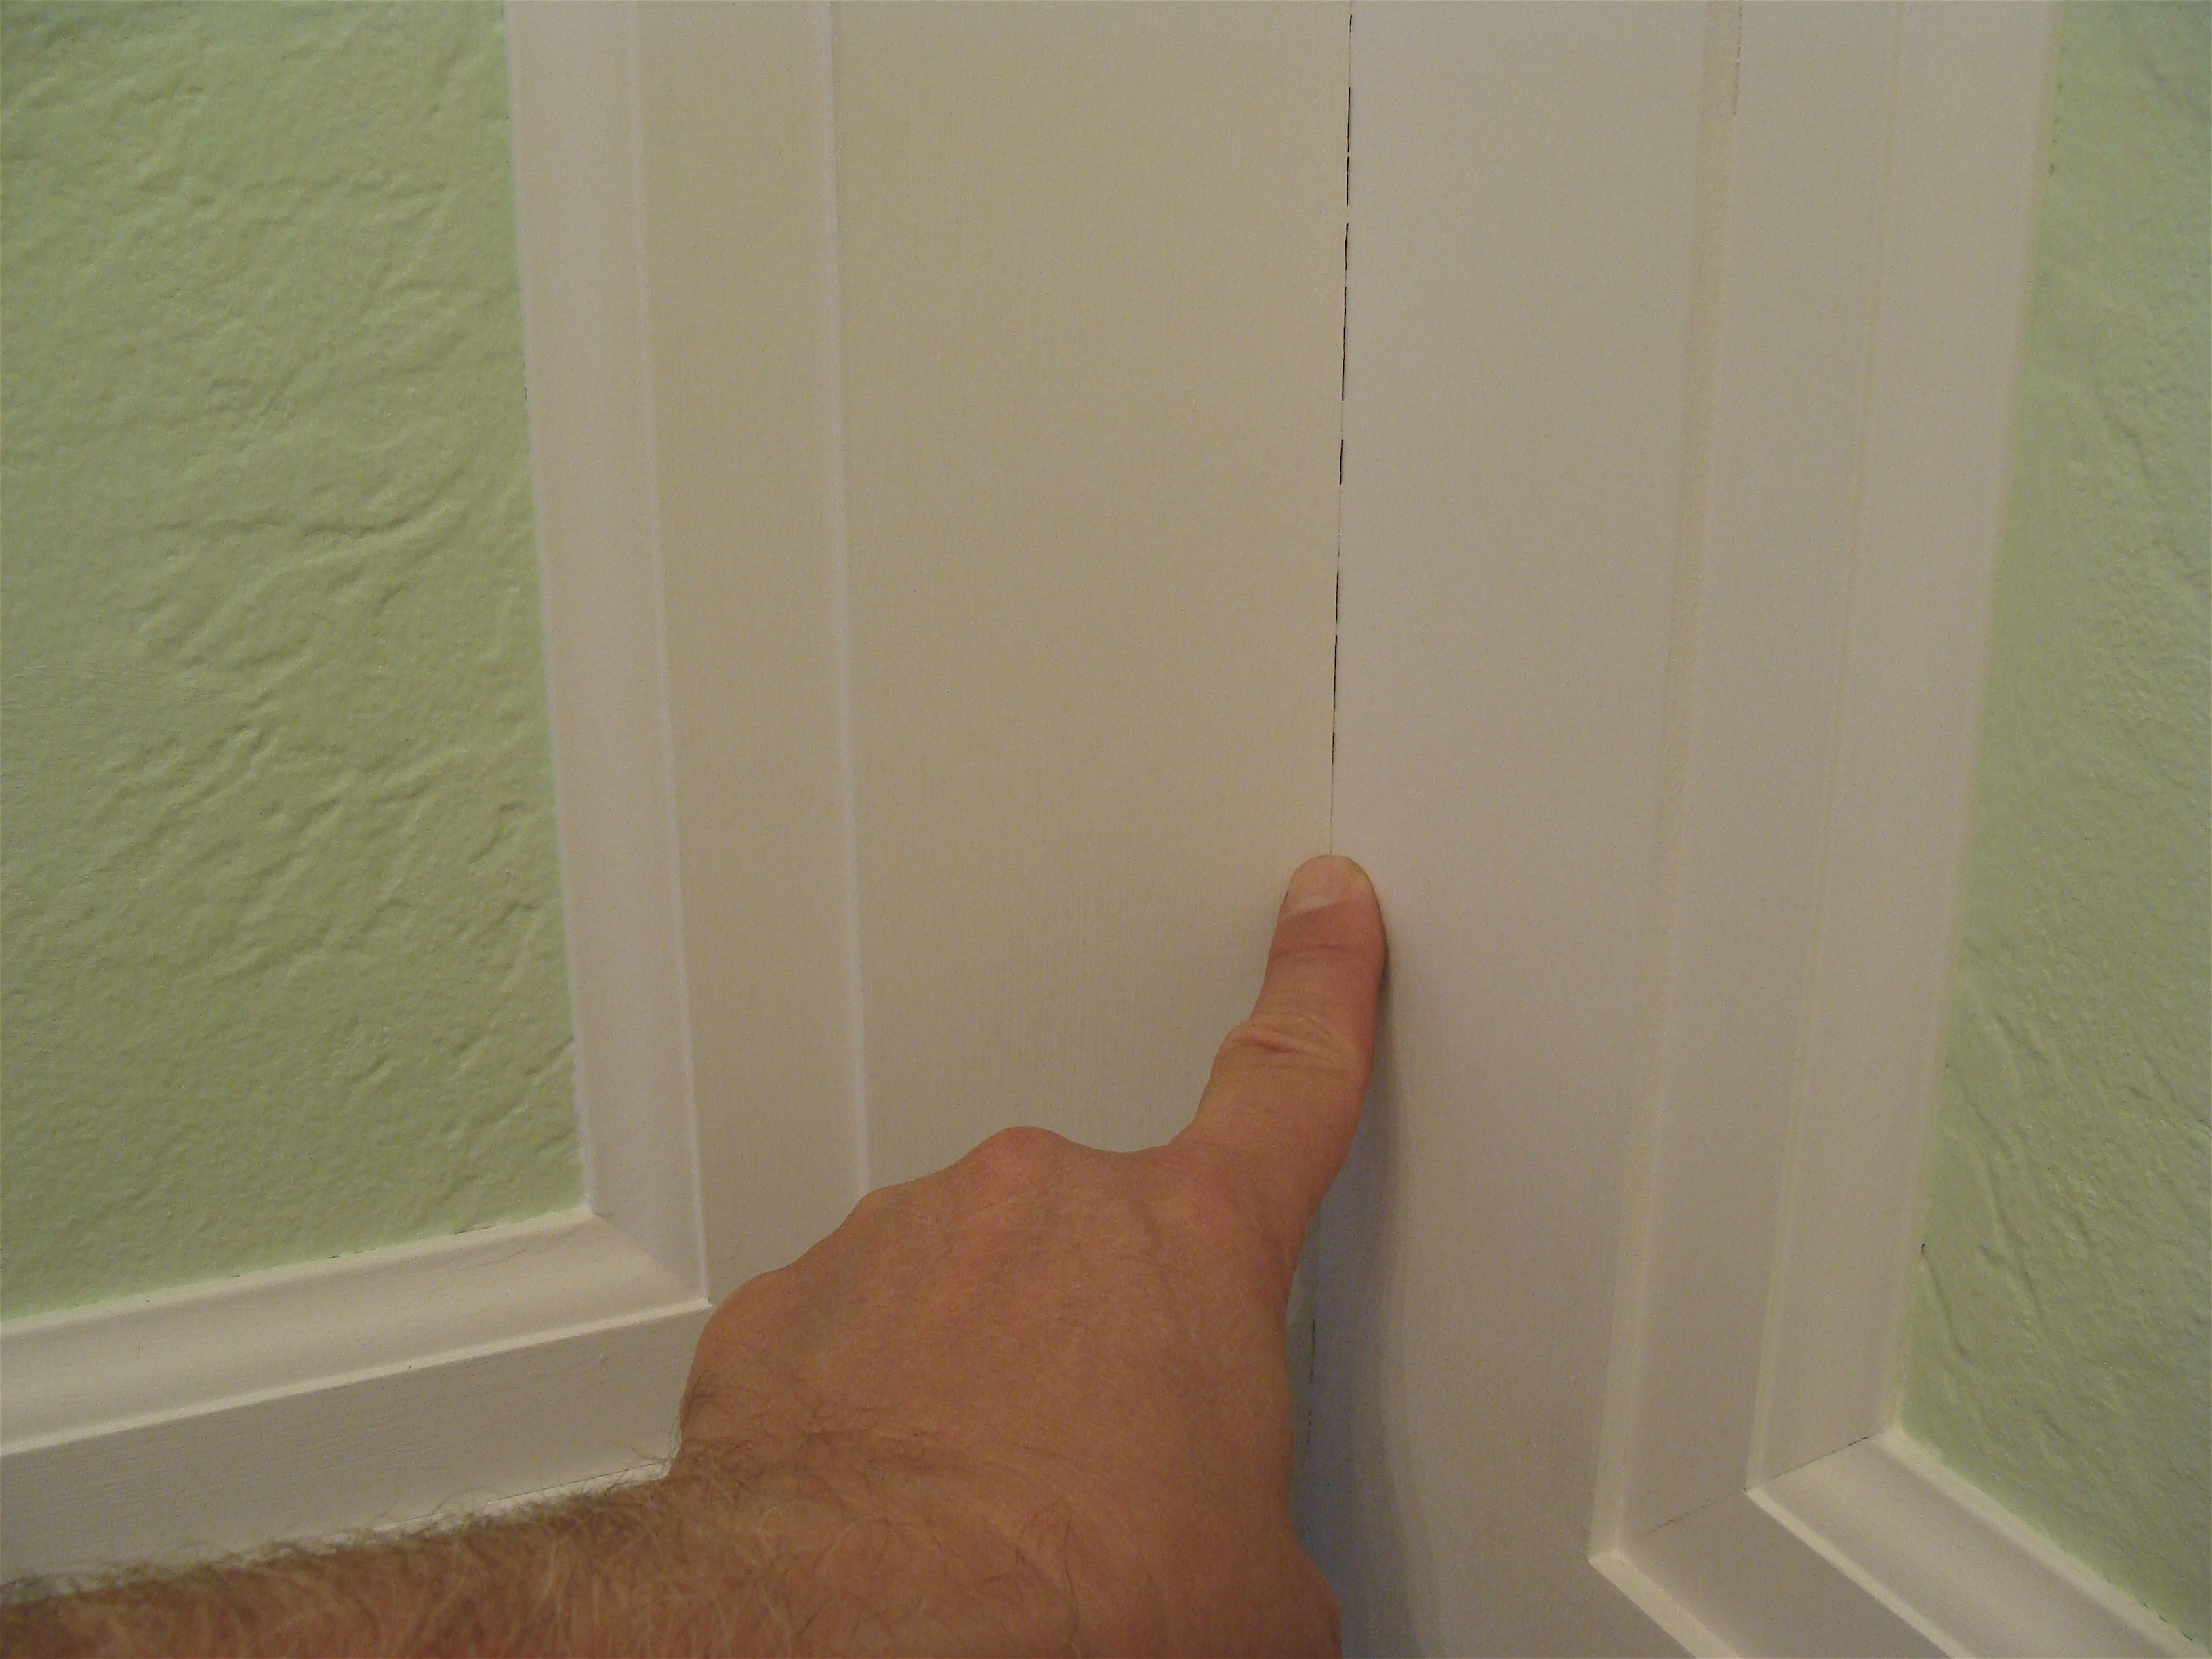 how-to-calulk-spackle-gaps-holes-in-moldings-millwork ...